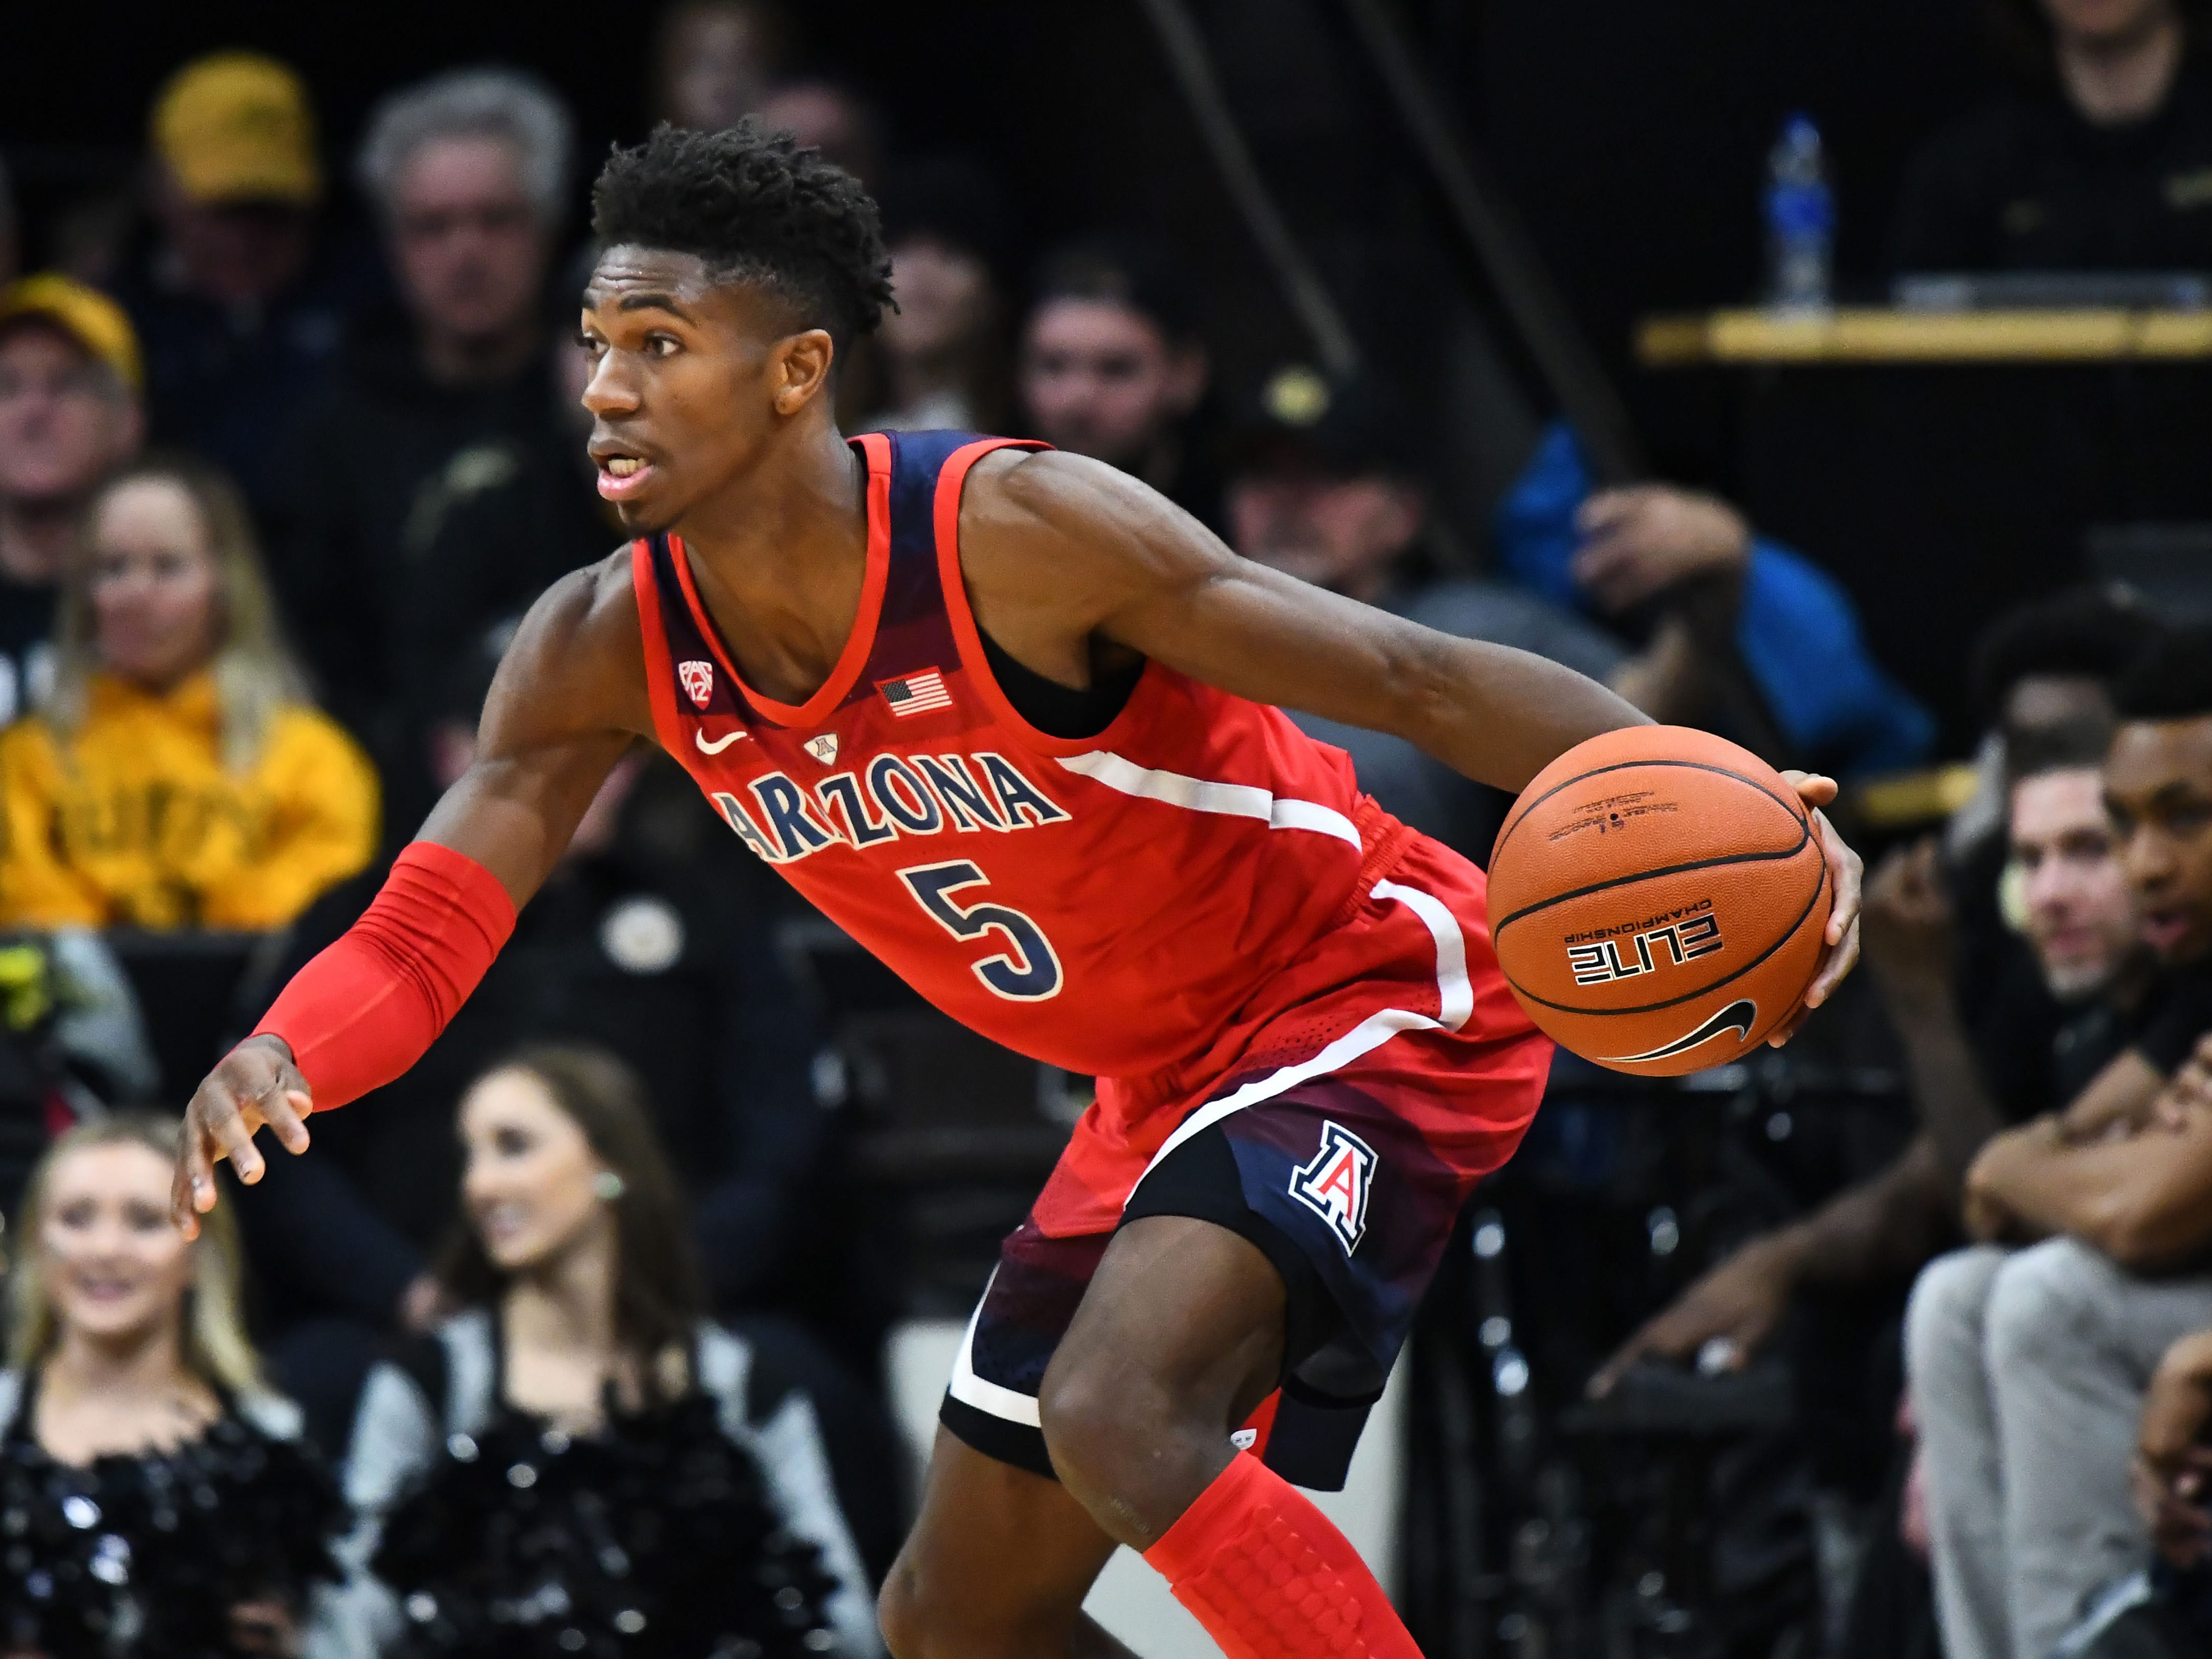 Feb 17, 2019; Boulder, CO, USA; Arizona Wildcats guard Brandon Randolph (5) controls the ball in the first half against the Colorado Buffaloes at the Coors Events Center. Mandatory Credit: Ron Chenoy-USA TODAY Sports